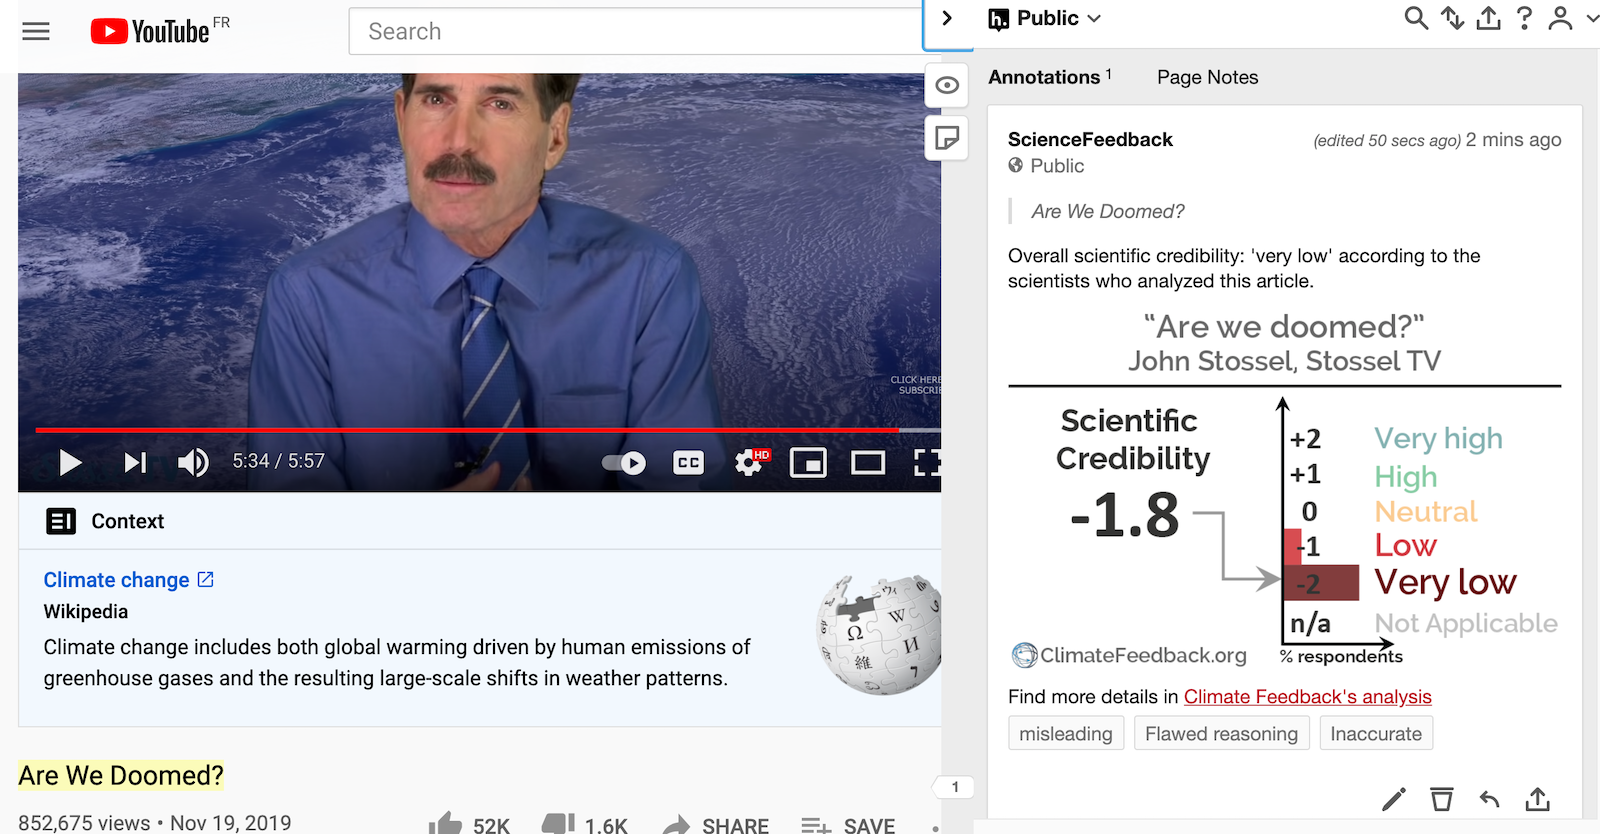 Video promoted by John Stossel for Earth Day relies on incorrect and misleading claims about climate change